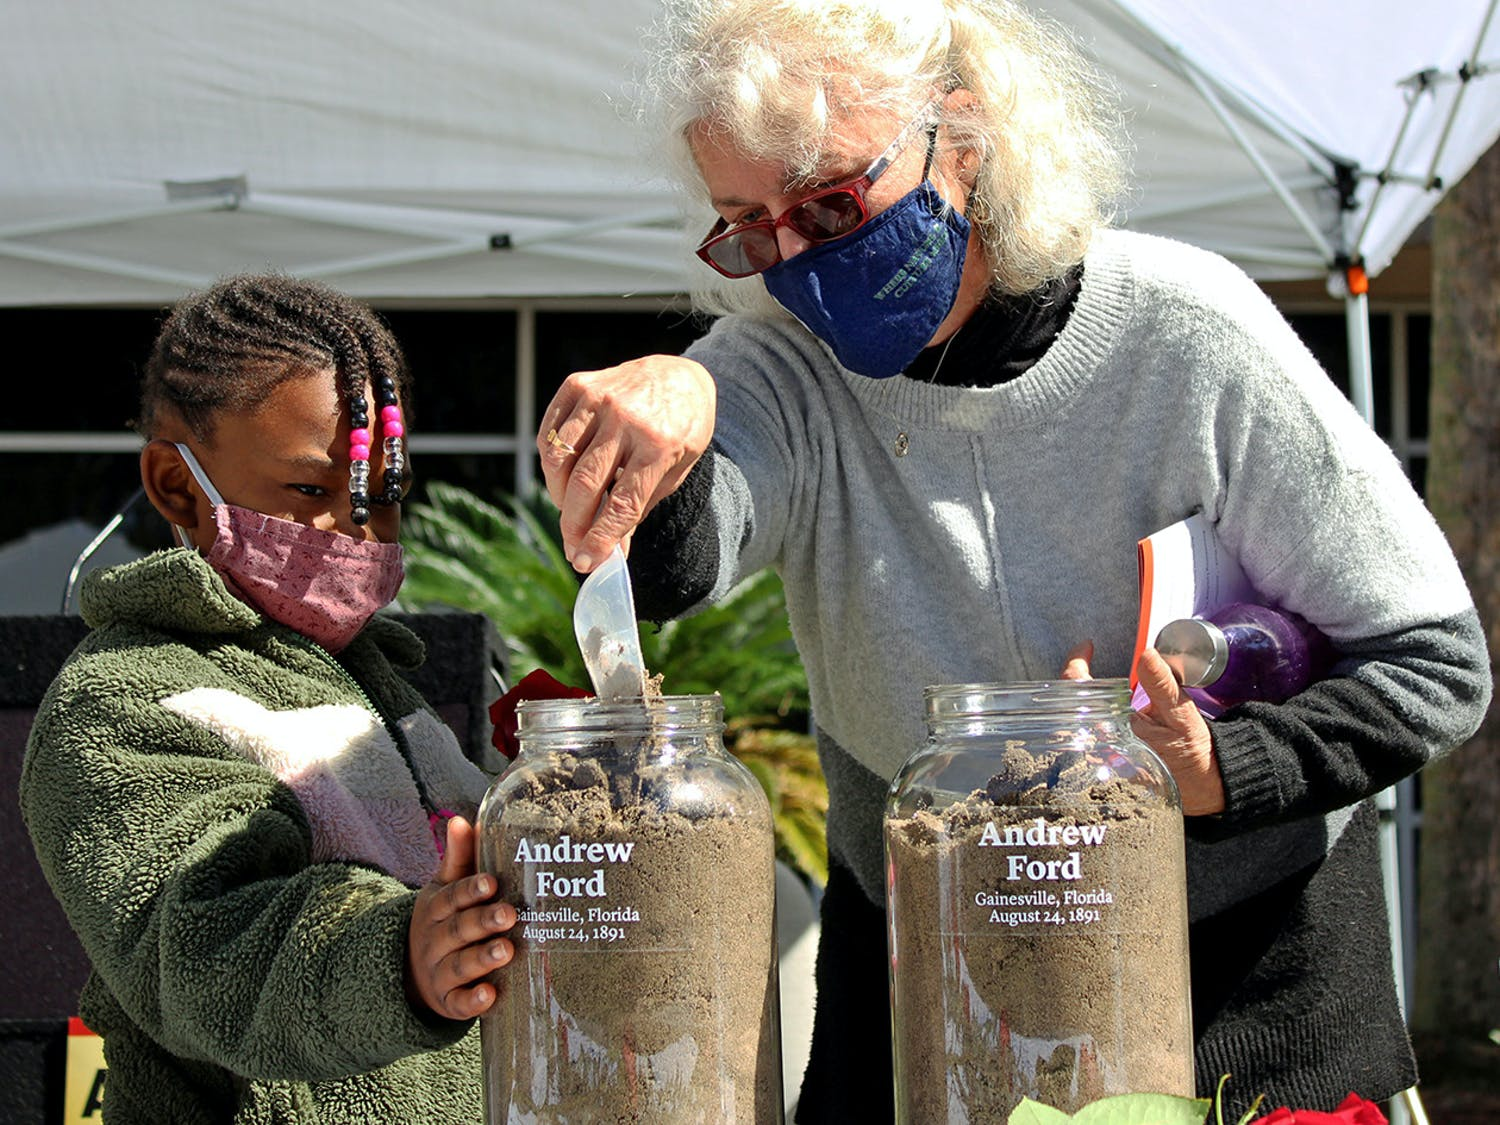 Alachua County Commissioner Marihelen Wheeler, 69, (right) and her granddaughter Tashayla Downer, 8, (left) fill a jar with soil to honor Andrew Ford at the Gainesville Soil Collection Ceremony on Feb. 20, 2021. Ford was lynched in Gainesville on Aug. 24, 1891, according to a pamphlet from the Alachua County Community Remembrance Project.